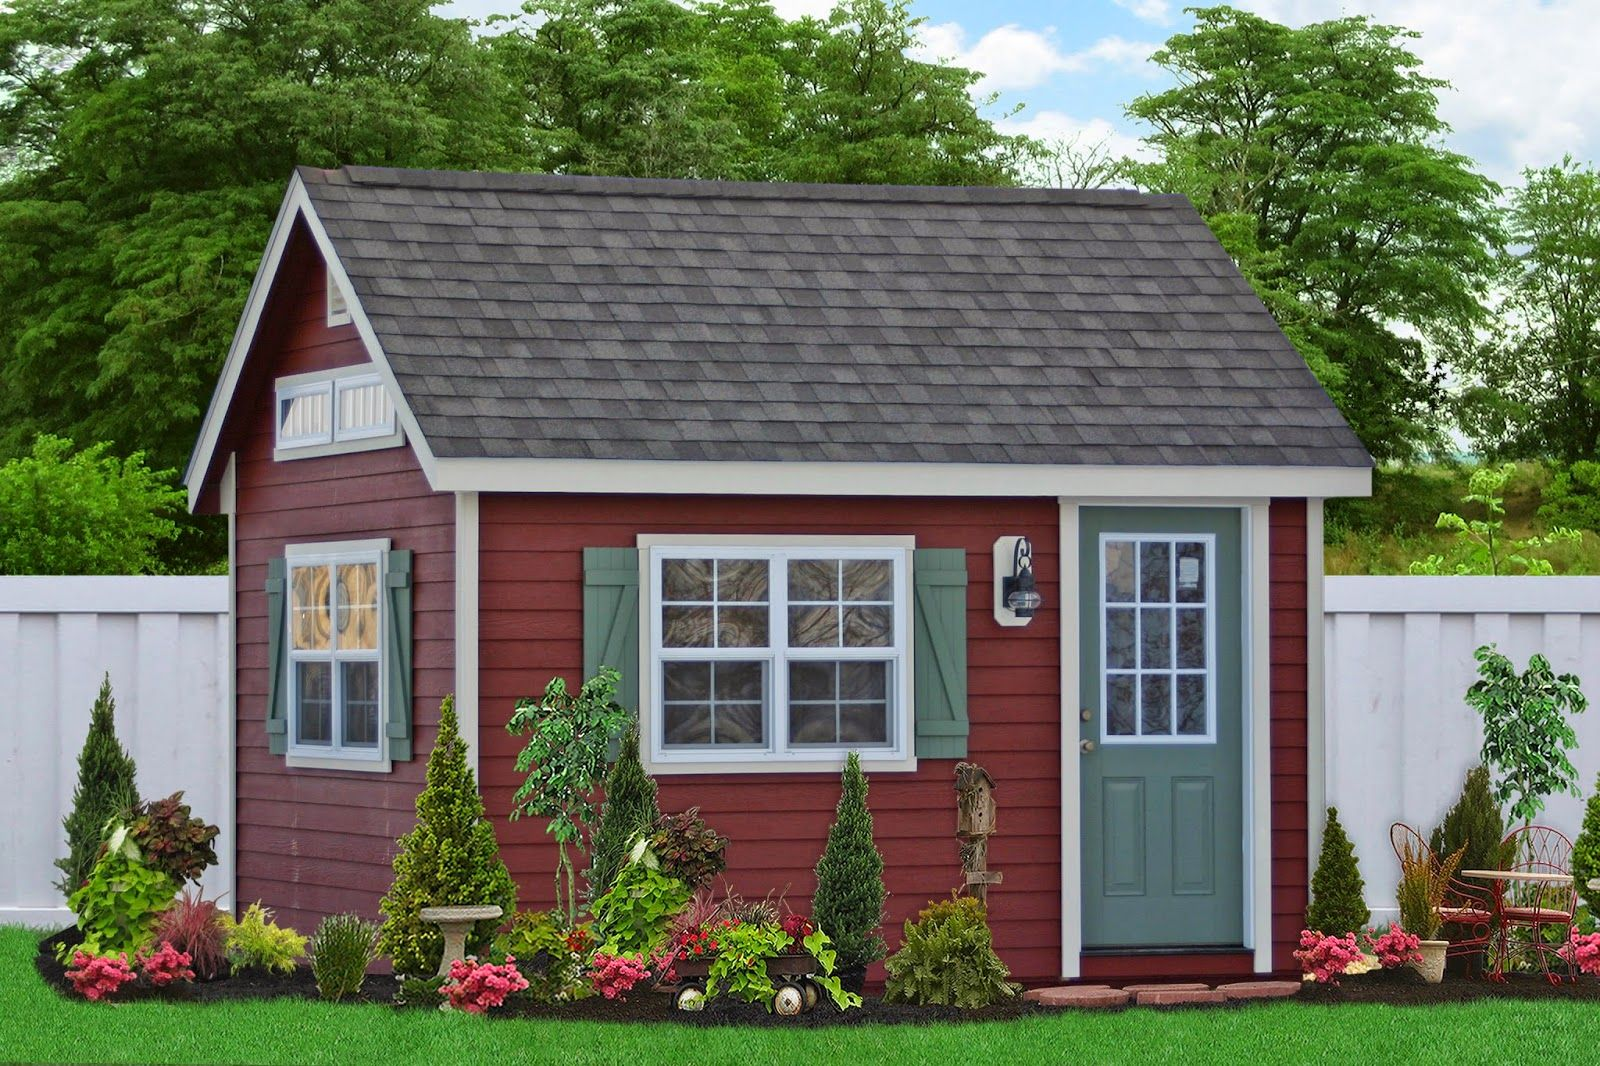 garden decor fair image of garden decorating ideas using maroon prefab studio garden shed along with grey single shed door and light grey shed roof tile - Garden Sheds Easton Pa